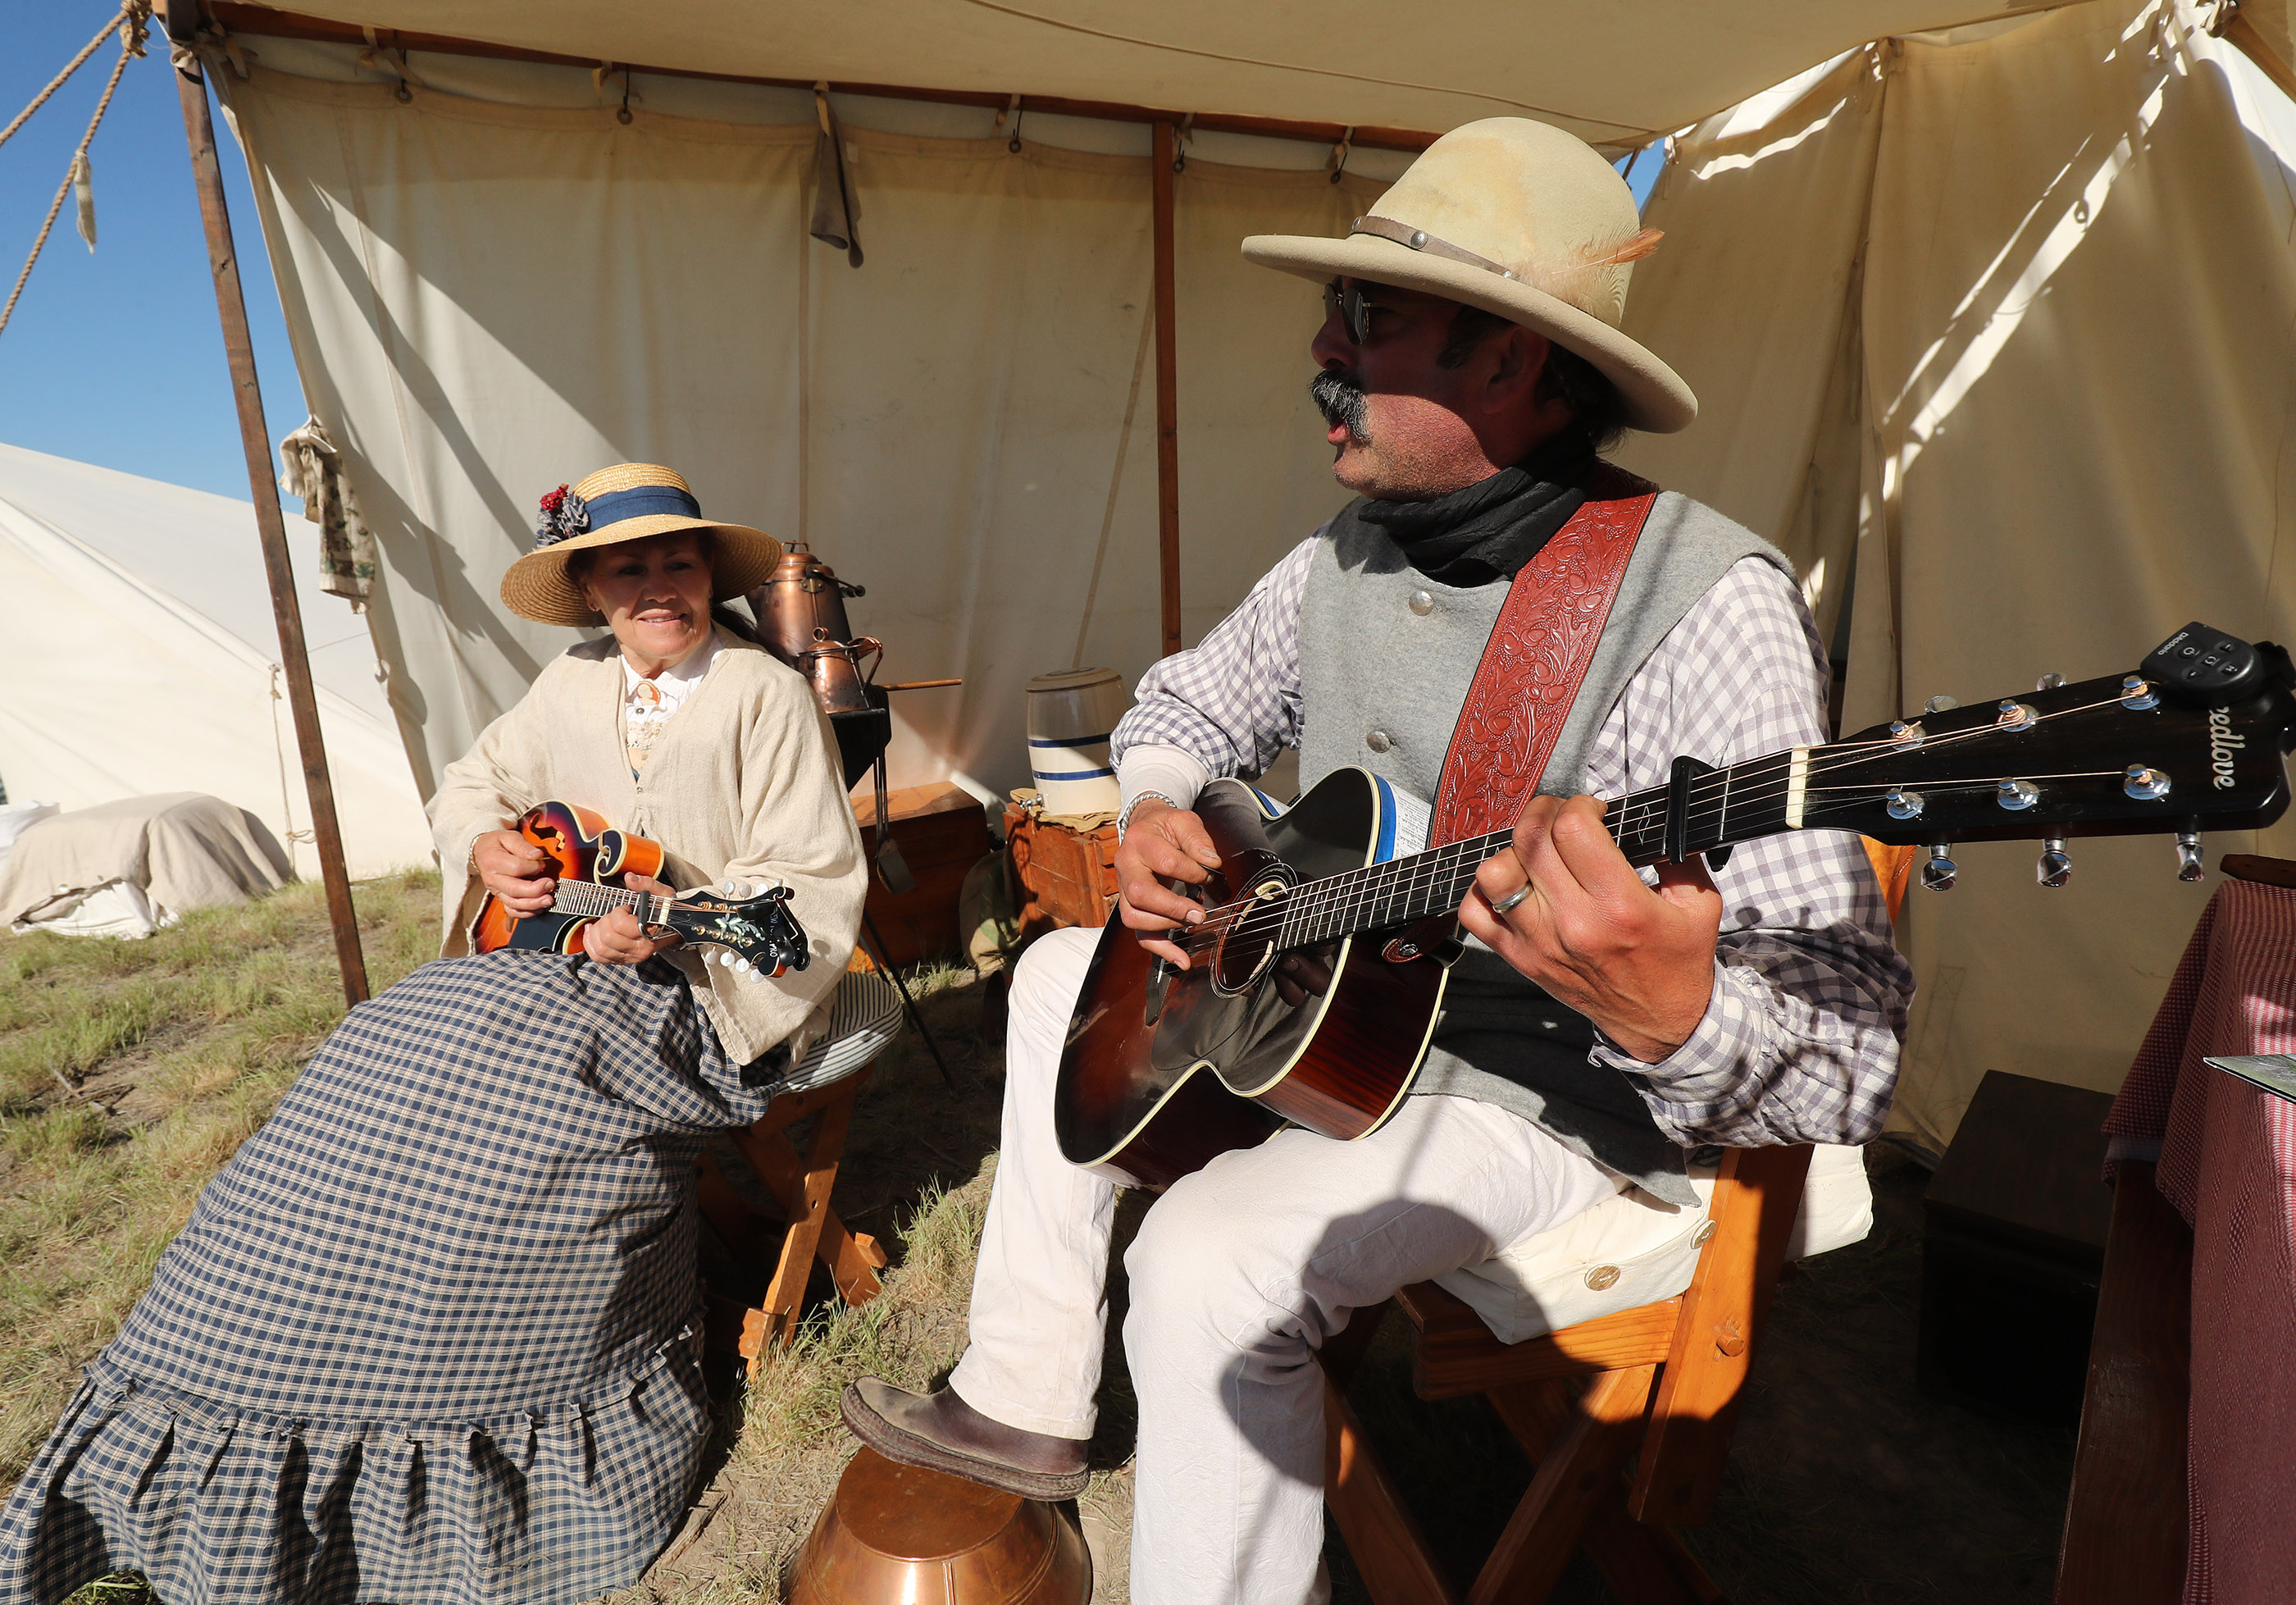 Mike Rudoff and Susy Epperson sing during the 150th anniversary celebration at the Golden Spike National Historical Park at Promontory Summit on Friday, May 10, 2019.